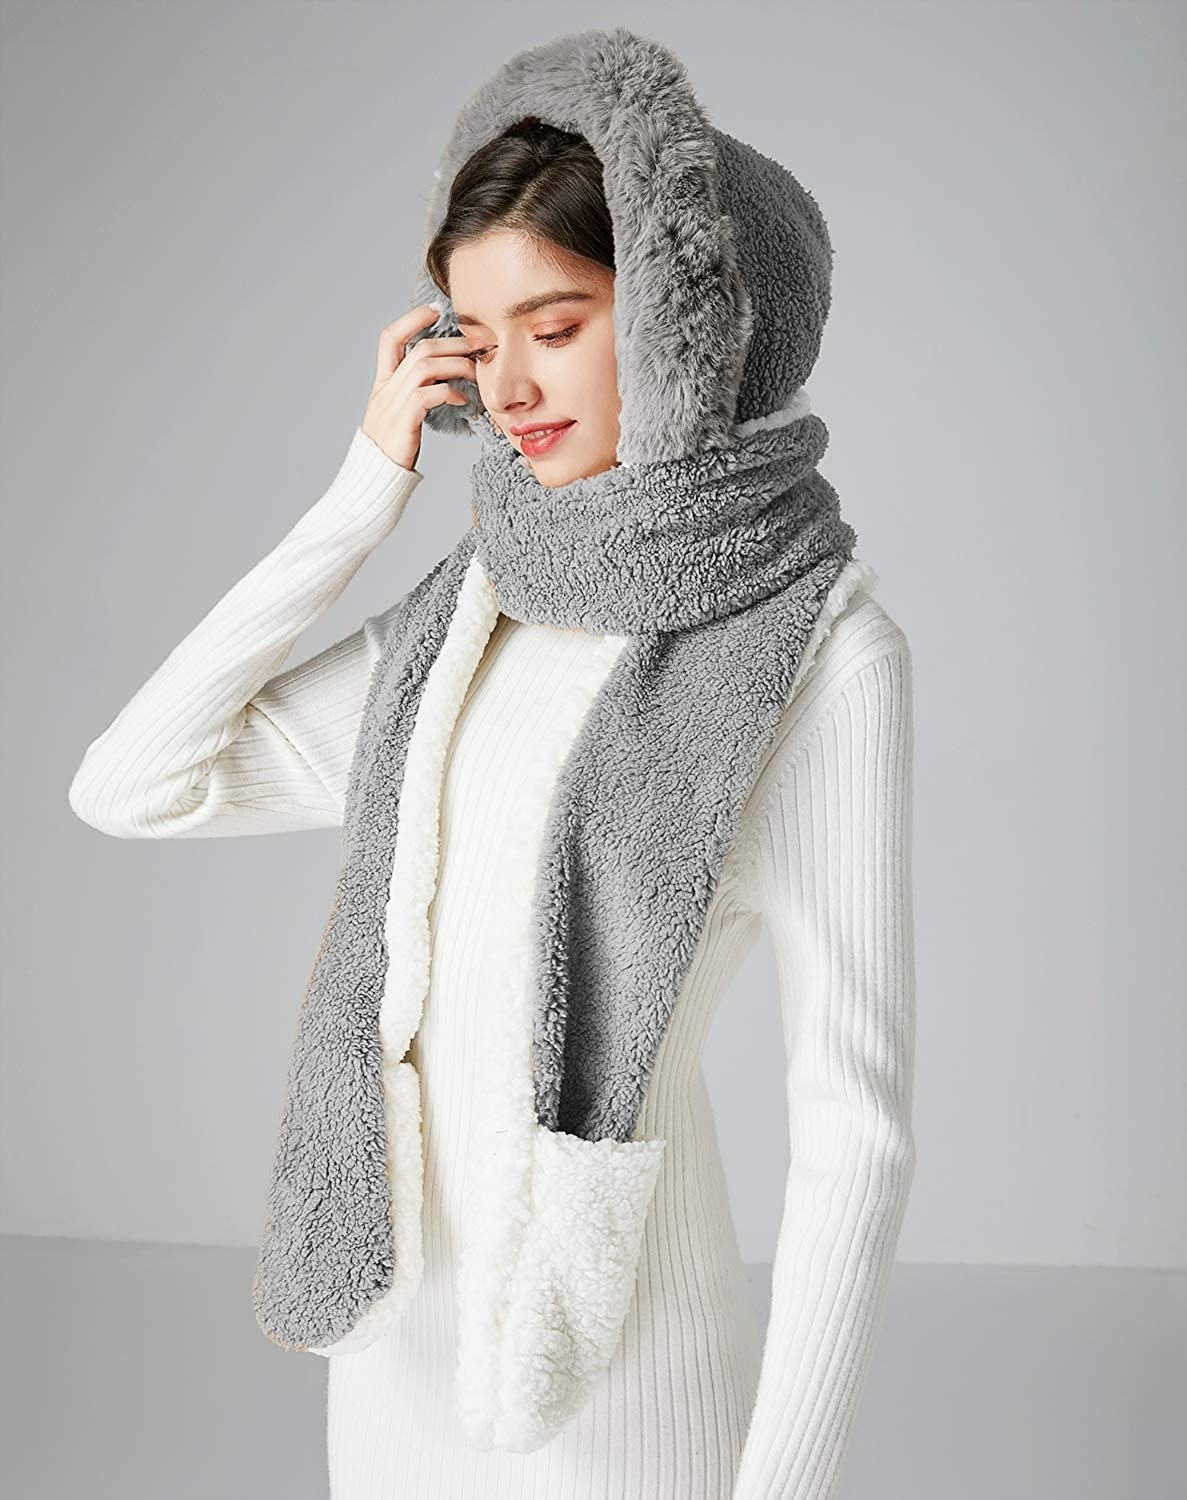 A model wears the grey and white Bellady Soft Winter Warm Hooded Scarf